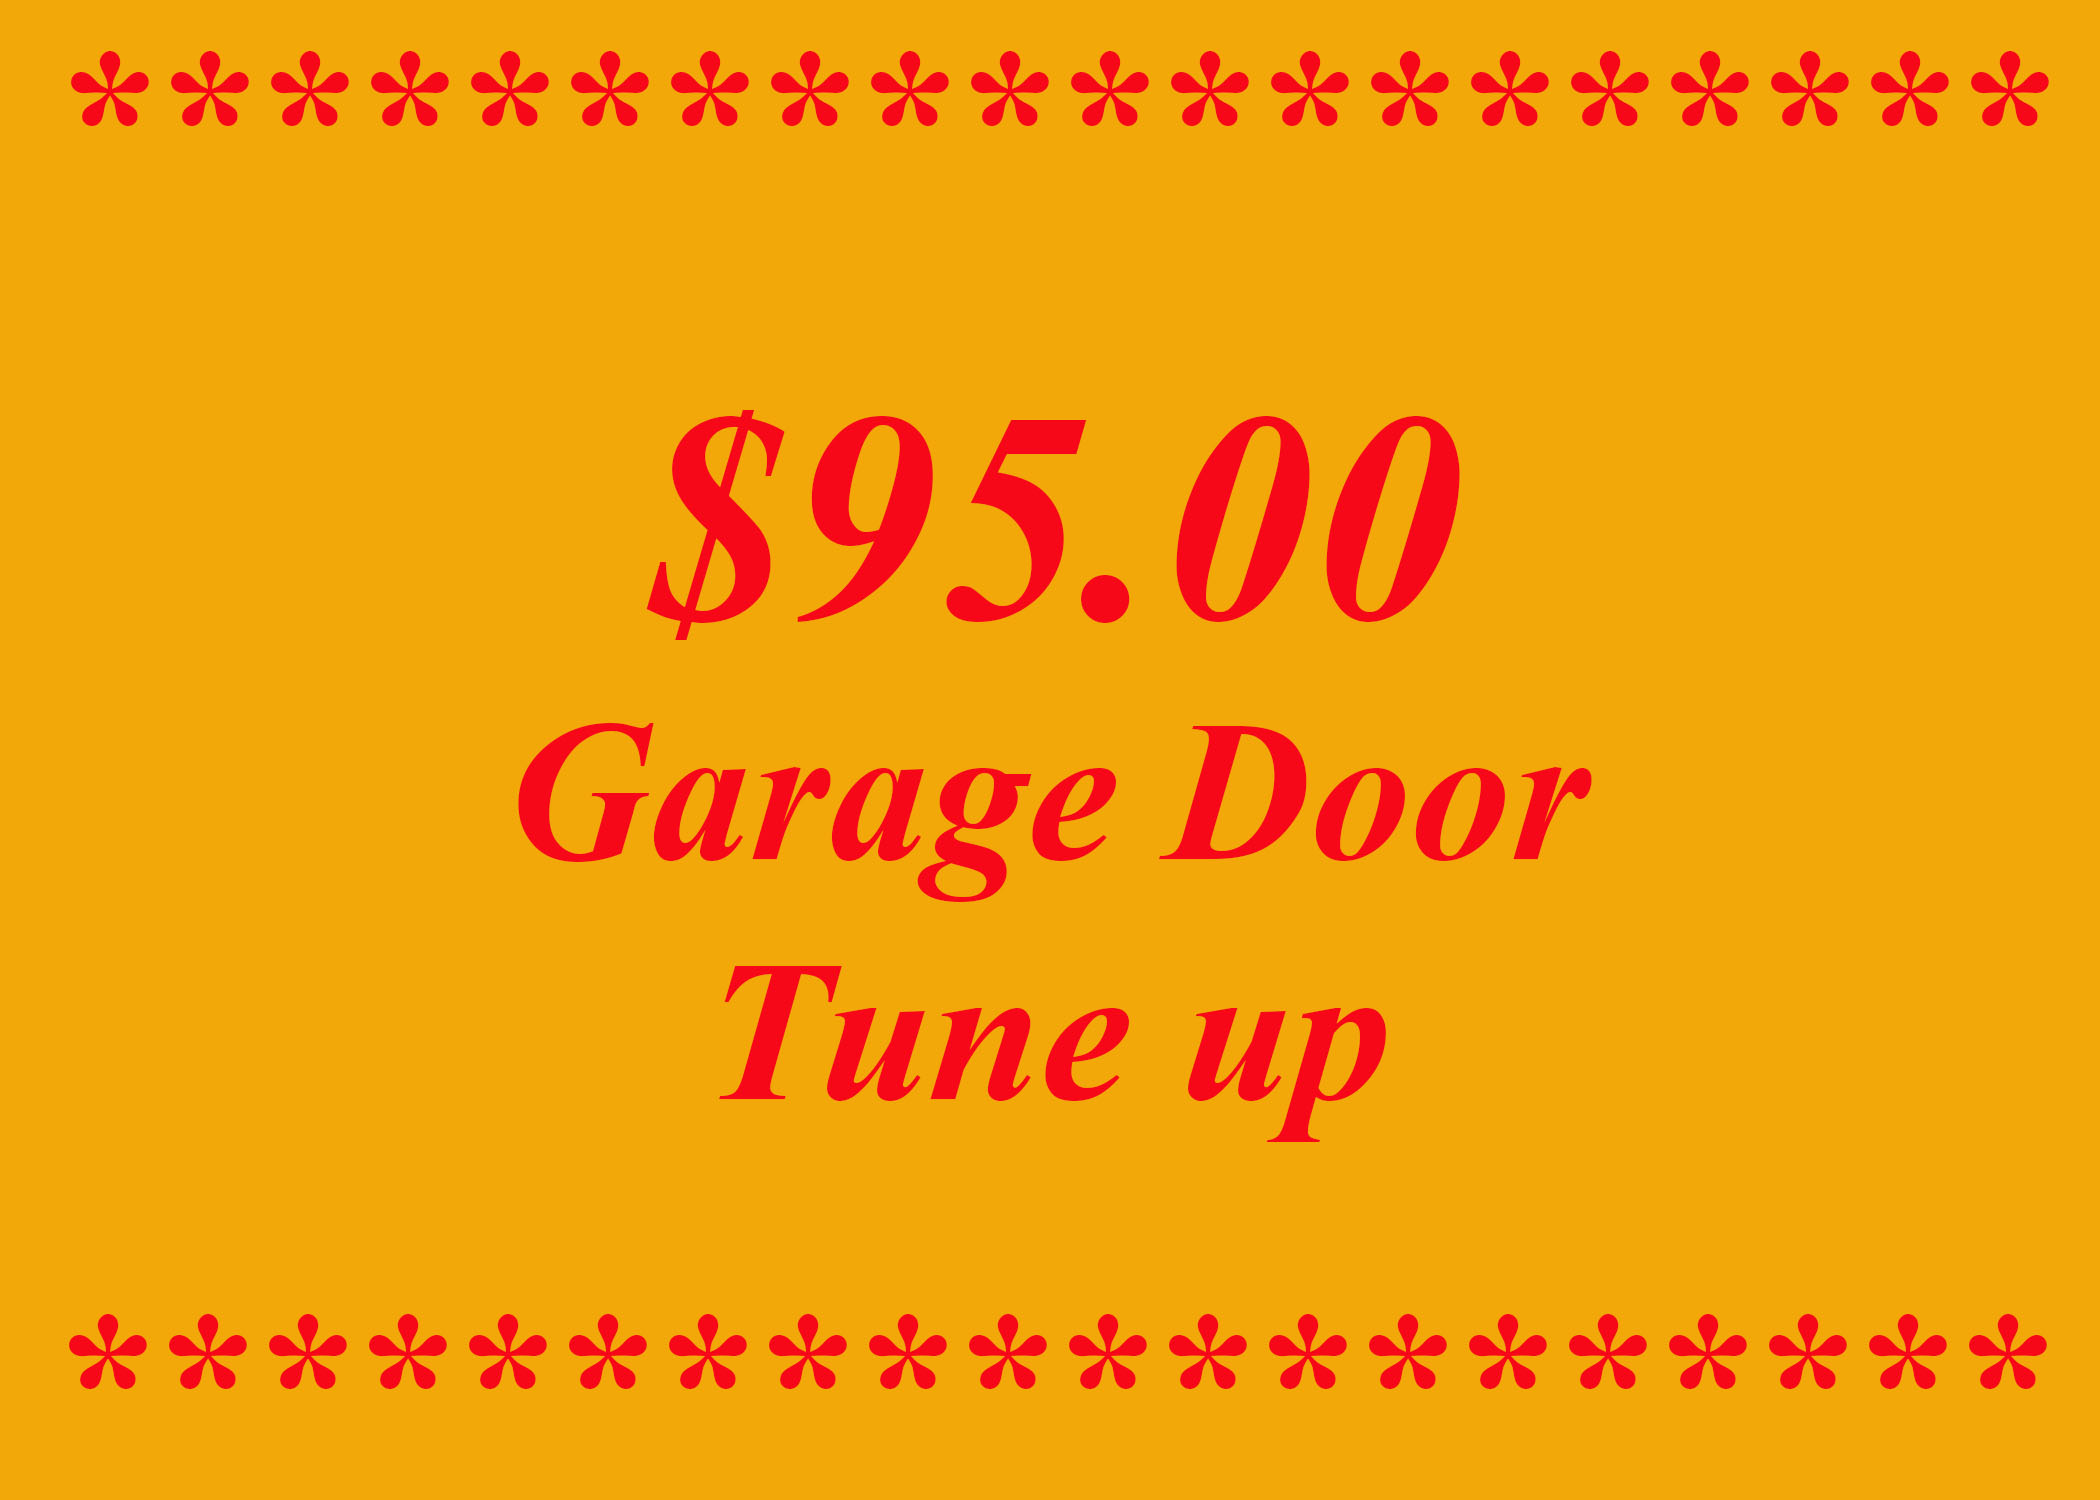 GARAGE DOOR TUNE UP - FIX PROBLEMS BEFORE THEY HAPPEN